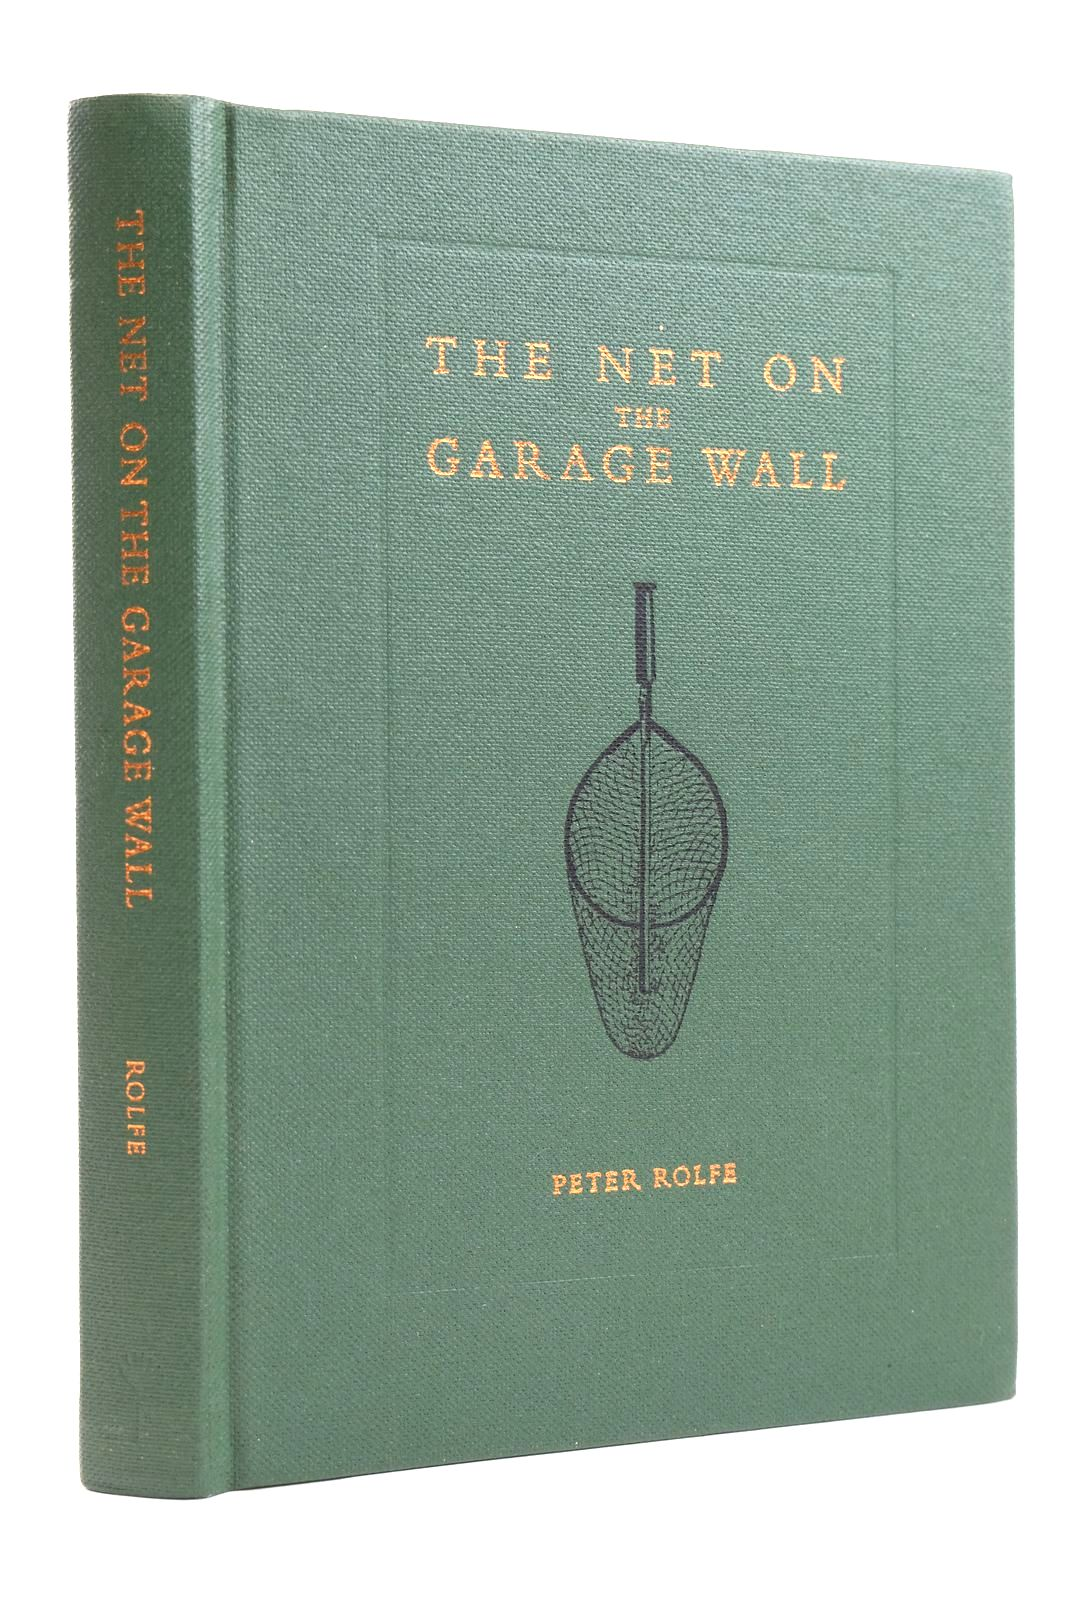 Photo of THE NET ON THE GARAGE WALL written by Rolfe, Peter illustrated by Cork, Stella published by The Medlar Press (STOCK CODE: 2131842)  for sale by Stella & Rose's Books